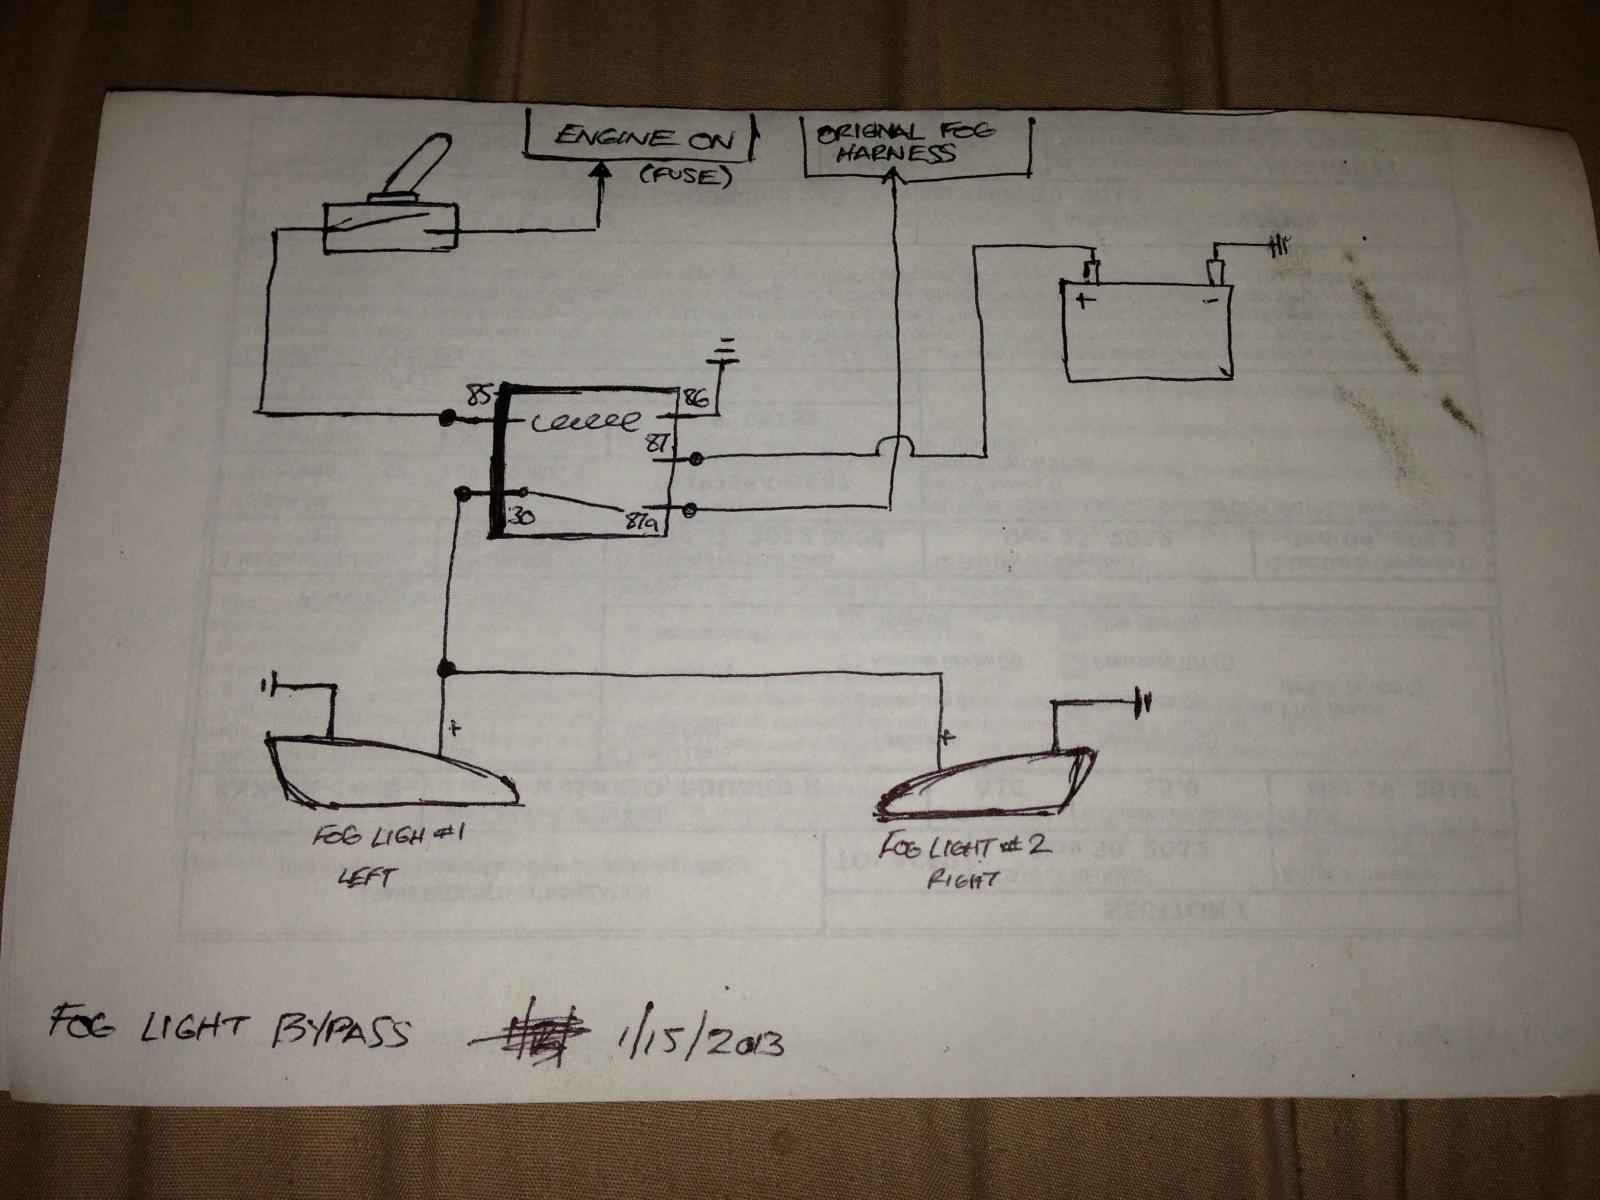 Fog Light Wiring Diagram Simple The Portal And Forum Of Dimmer Switch Mazda To Bypass Foglights Works W O Headlights Or Rh Optimaforums Com Typical Up Lights